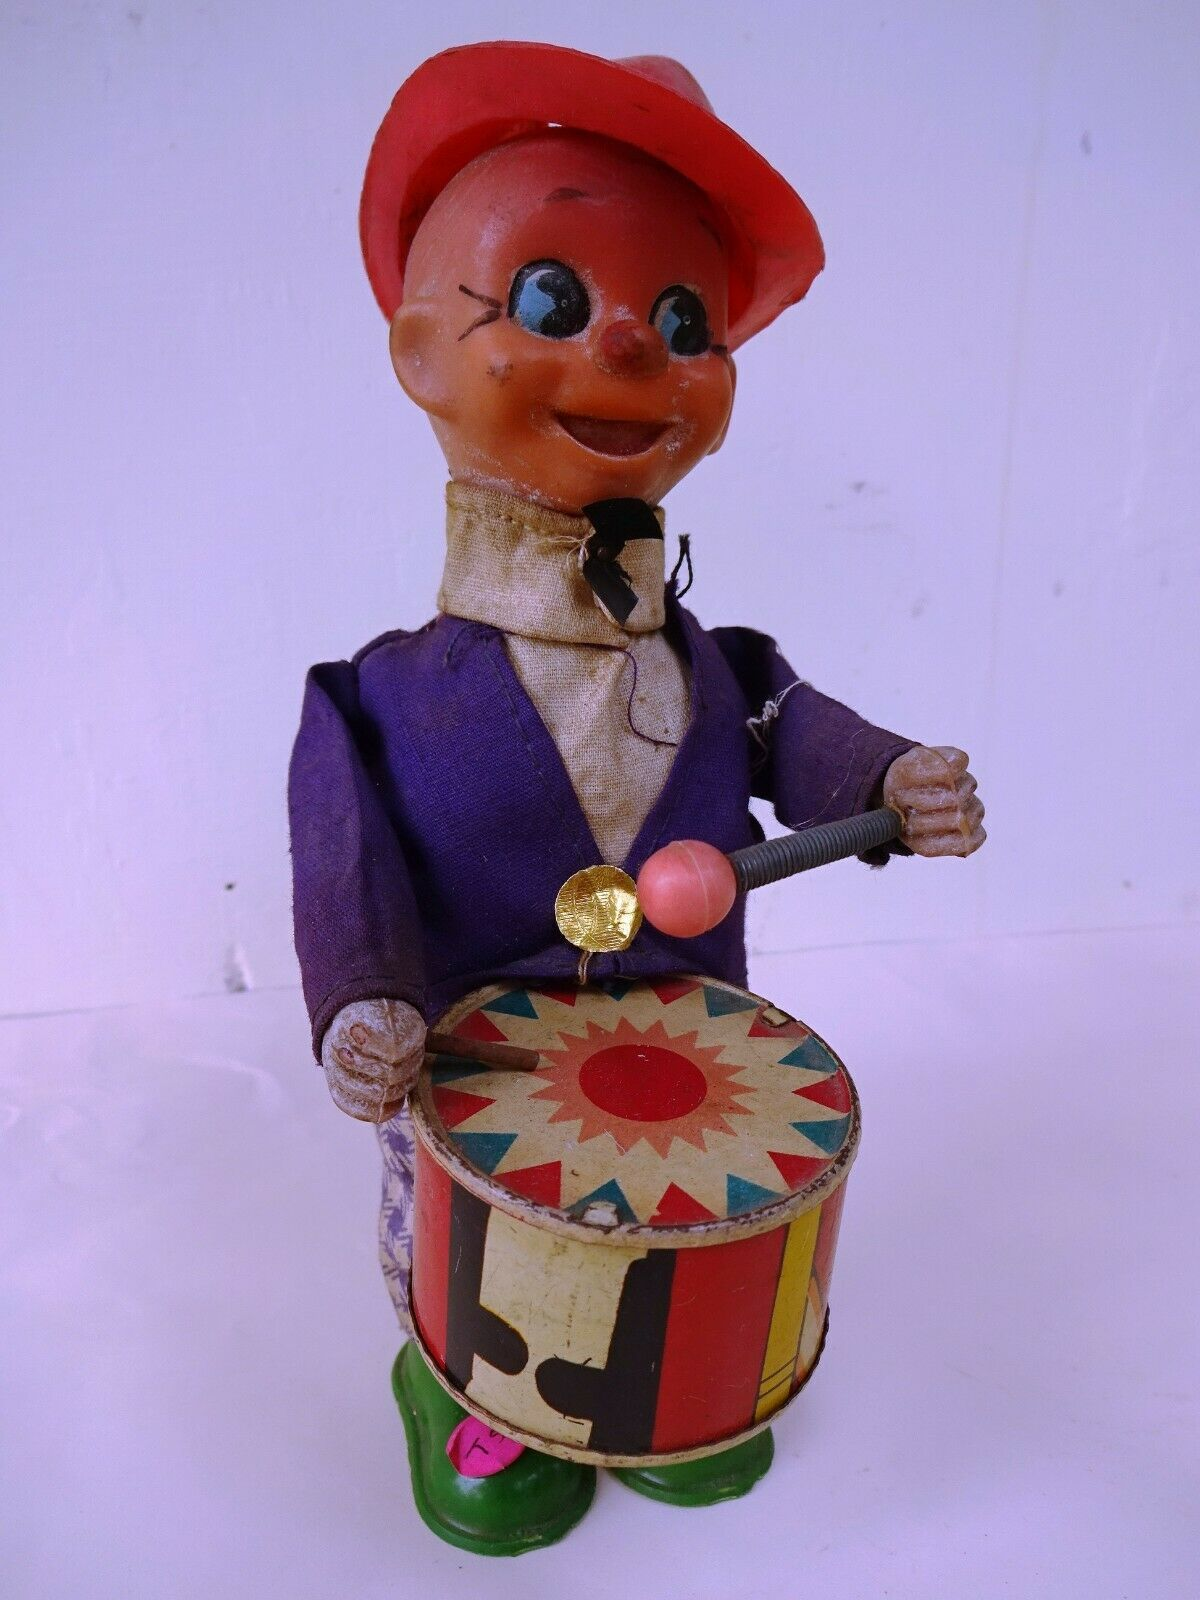 Vintage Drummer Boy Celluloid Wind Up Toy Plastic Rubber Red Cap Collectibles